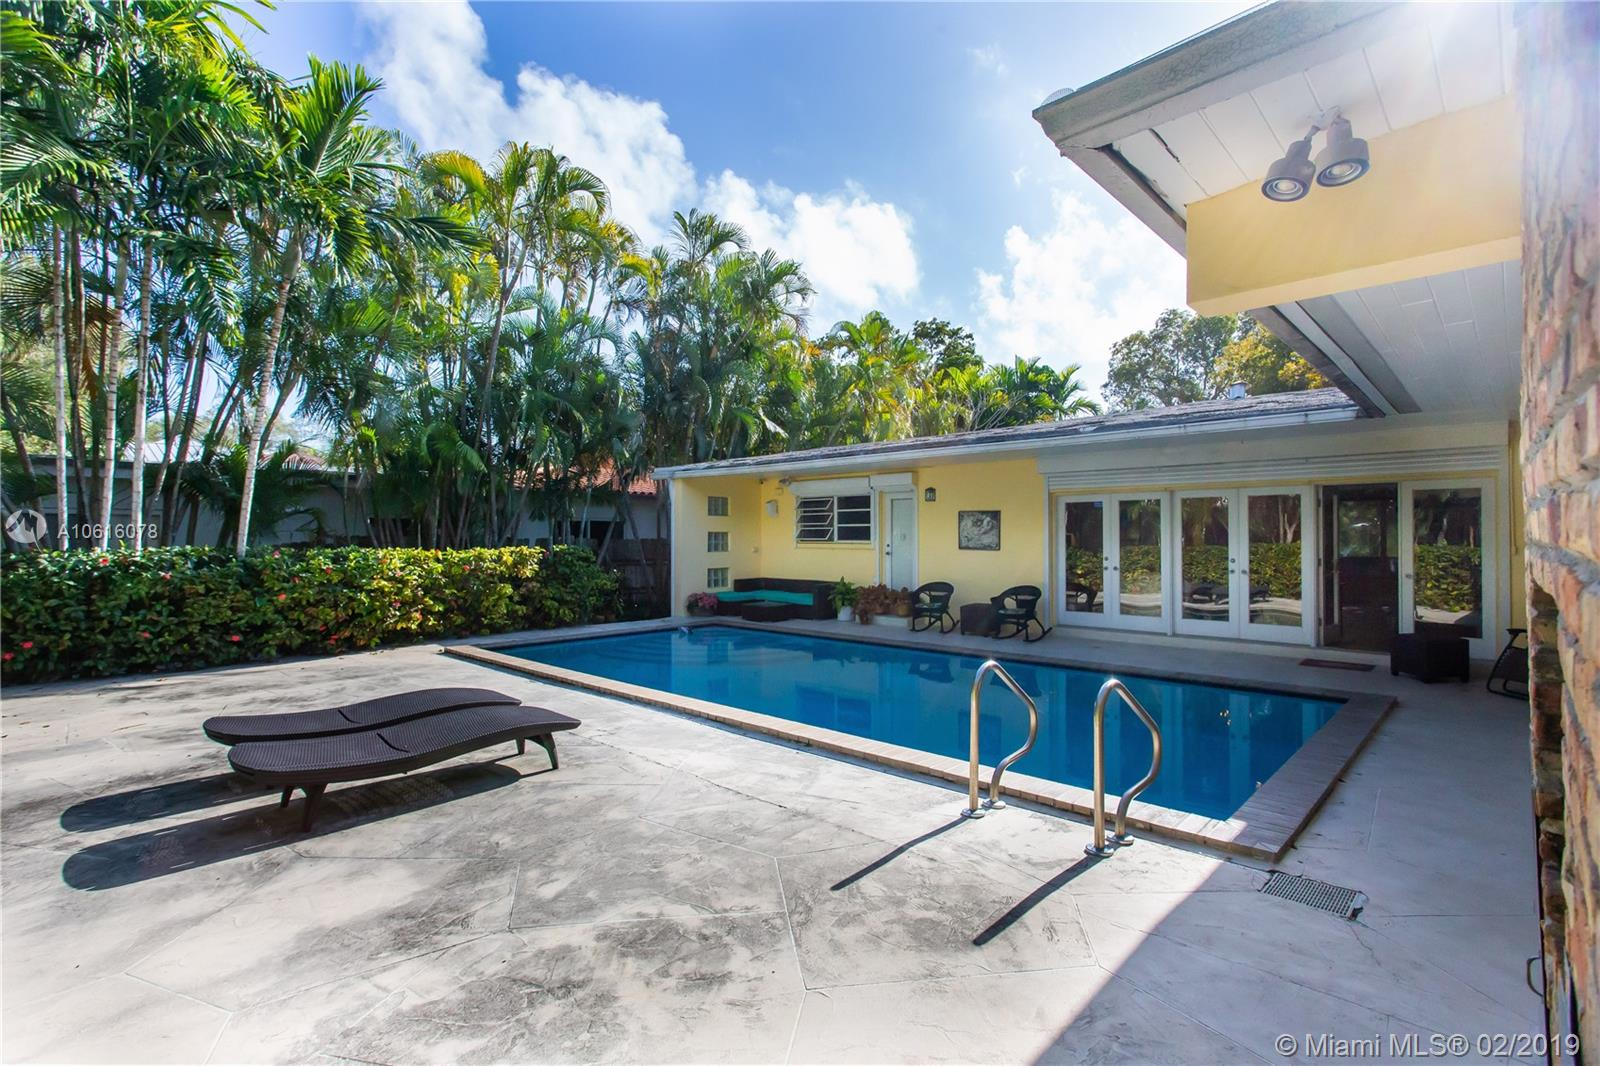 **BEST HOME FOR VALUE AT HIGH-DEMAND BAY HEIGHTS/COCONUT GROVE** WONDERFUL FLOOR PLAN WITH UNLIMITED POTENTIAL. 3 LARGE BEDROOMS. 3.5 FULL BATHROOMS. LARGE POOL. GREAT BACKYARD. 2 COVERED CAR GARAGE. HIGH-CEILINGS. LOTS OF NATURAL LIGHT. SPACIOUS LIVING, FORMAL DINING ROOM, LARGE KITCHEN AREA. BEAUTIFUL FRONT APPEAL AT QUIET PINTA ROAD. FENCED. PLENTY OF DRIVEWAY FOR ADDITIONAL PARKING. PRIVATE 24 HOURS SECURITY COMMUNITY. WALKING DISTANCE TO VIZCAYA MUSEUM AND GARDENS